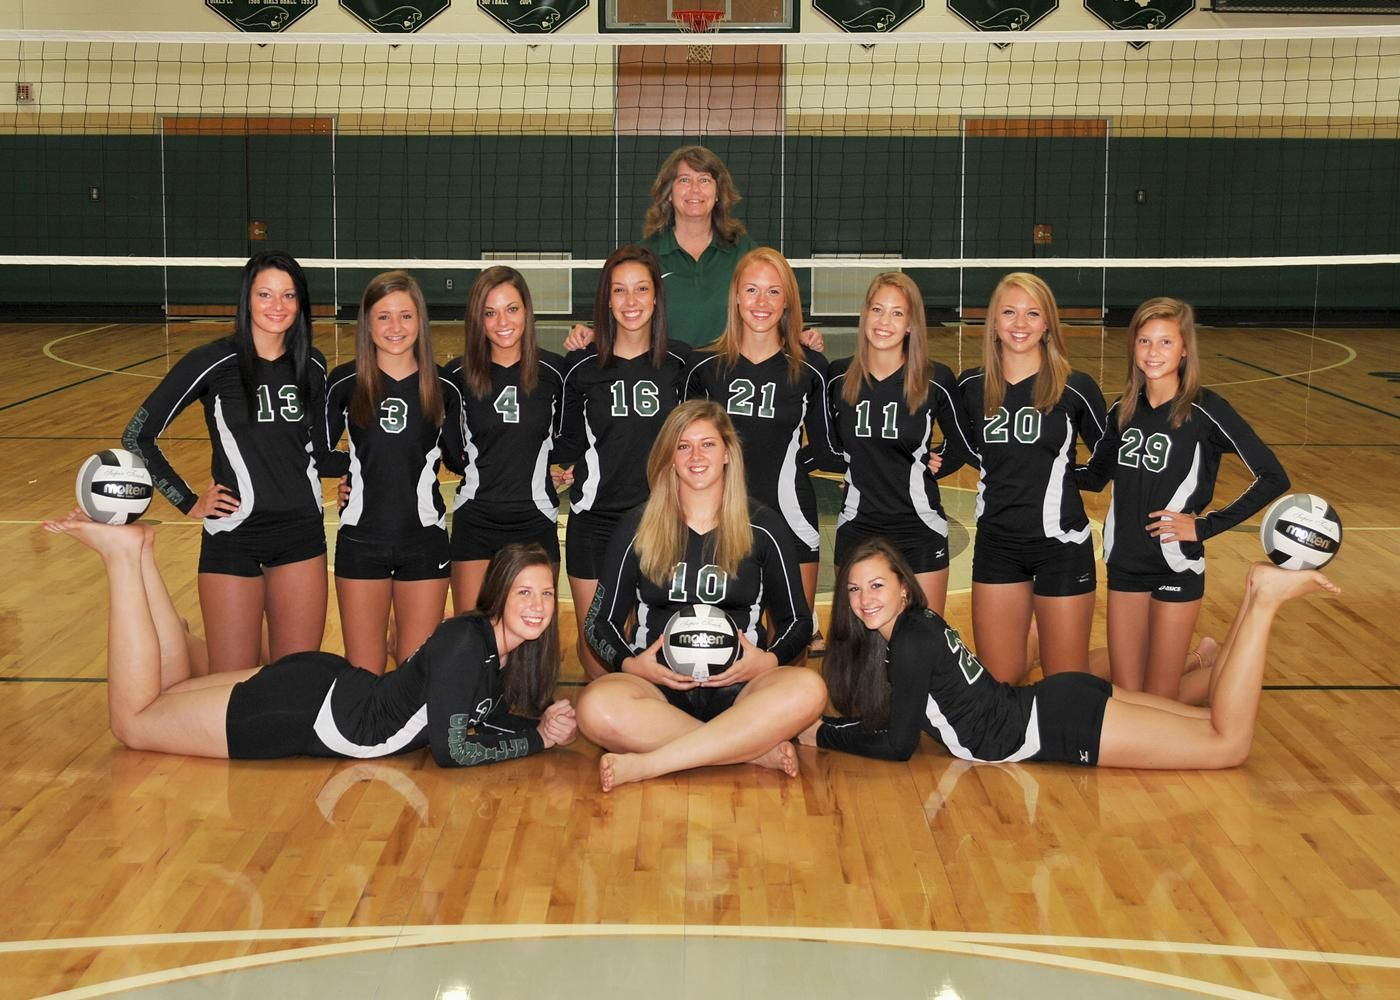 Volleyball Team Pictures Google Search Volleyball Team Pictures Basketball Team Pictures Volleyball Photos